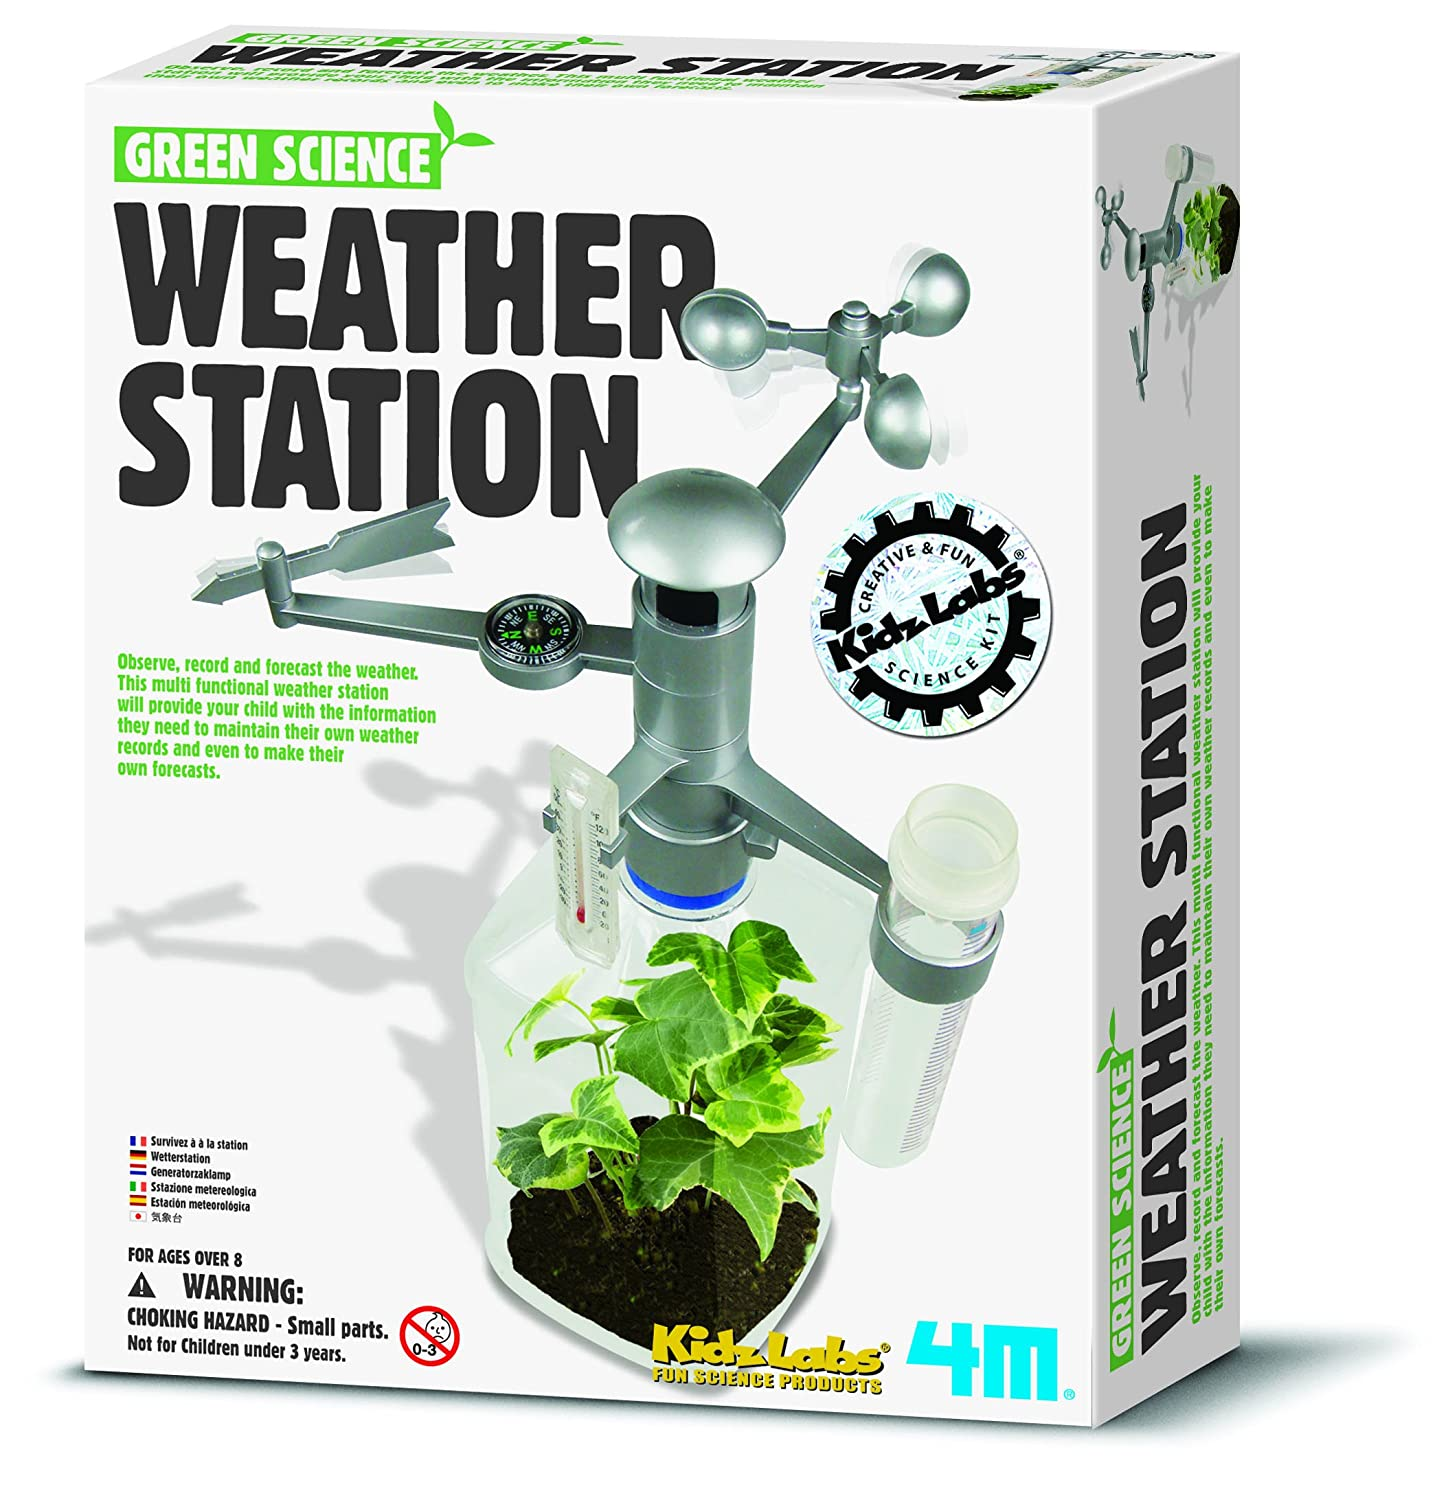 Green Science - Weather Station - Girls Boys Kids Children - Build Your Own Terrarium Kit - Exciting Birthday Present Gift Fun Toys & Games Idea Age 8+ Green Science Kit